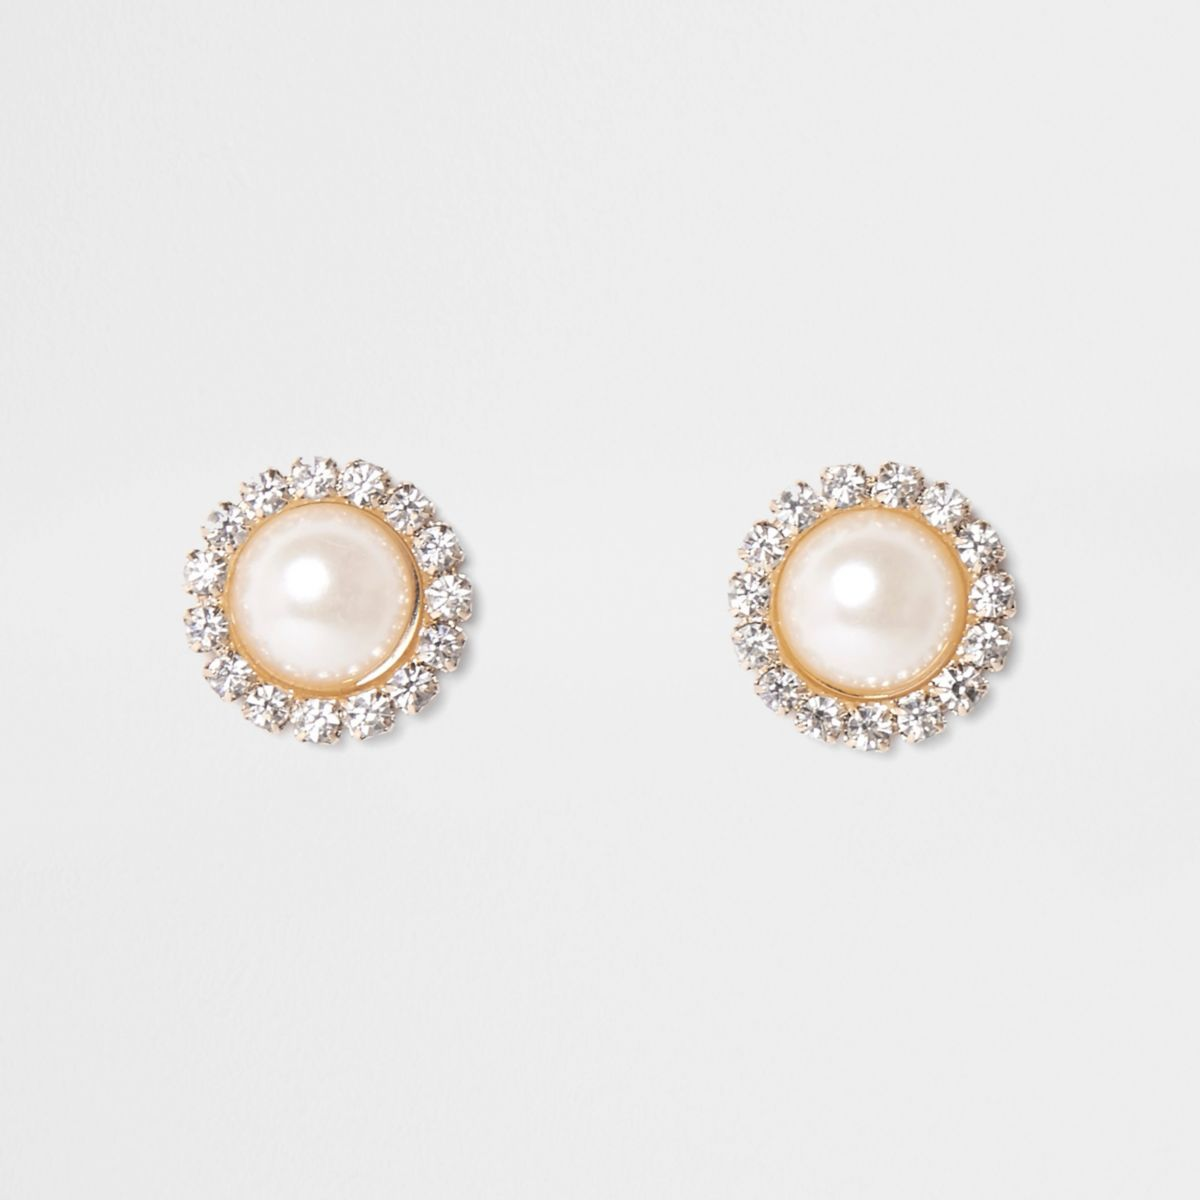 Gold tone round diamante pearl stud earrings